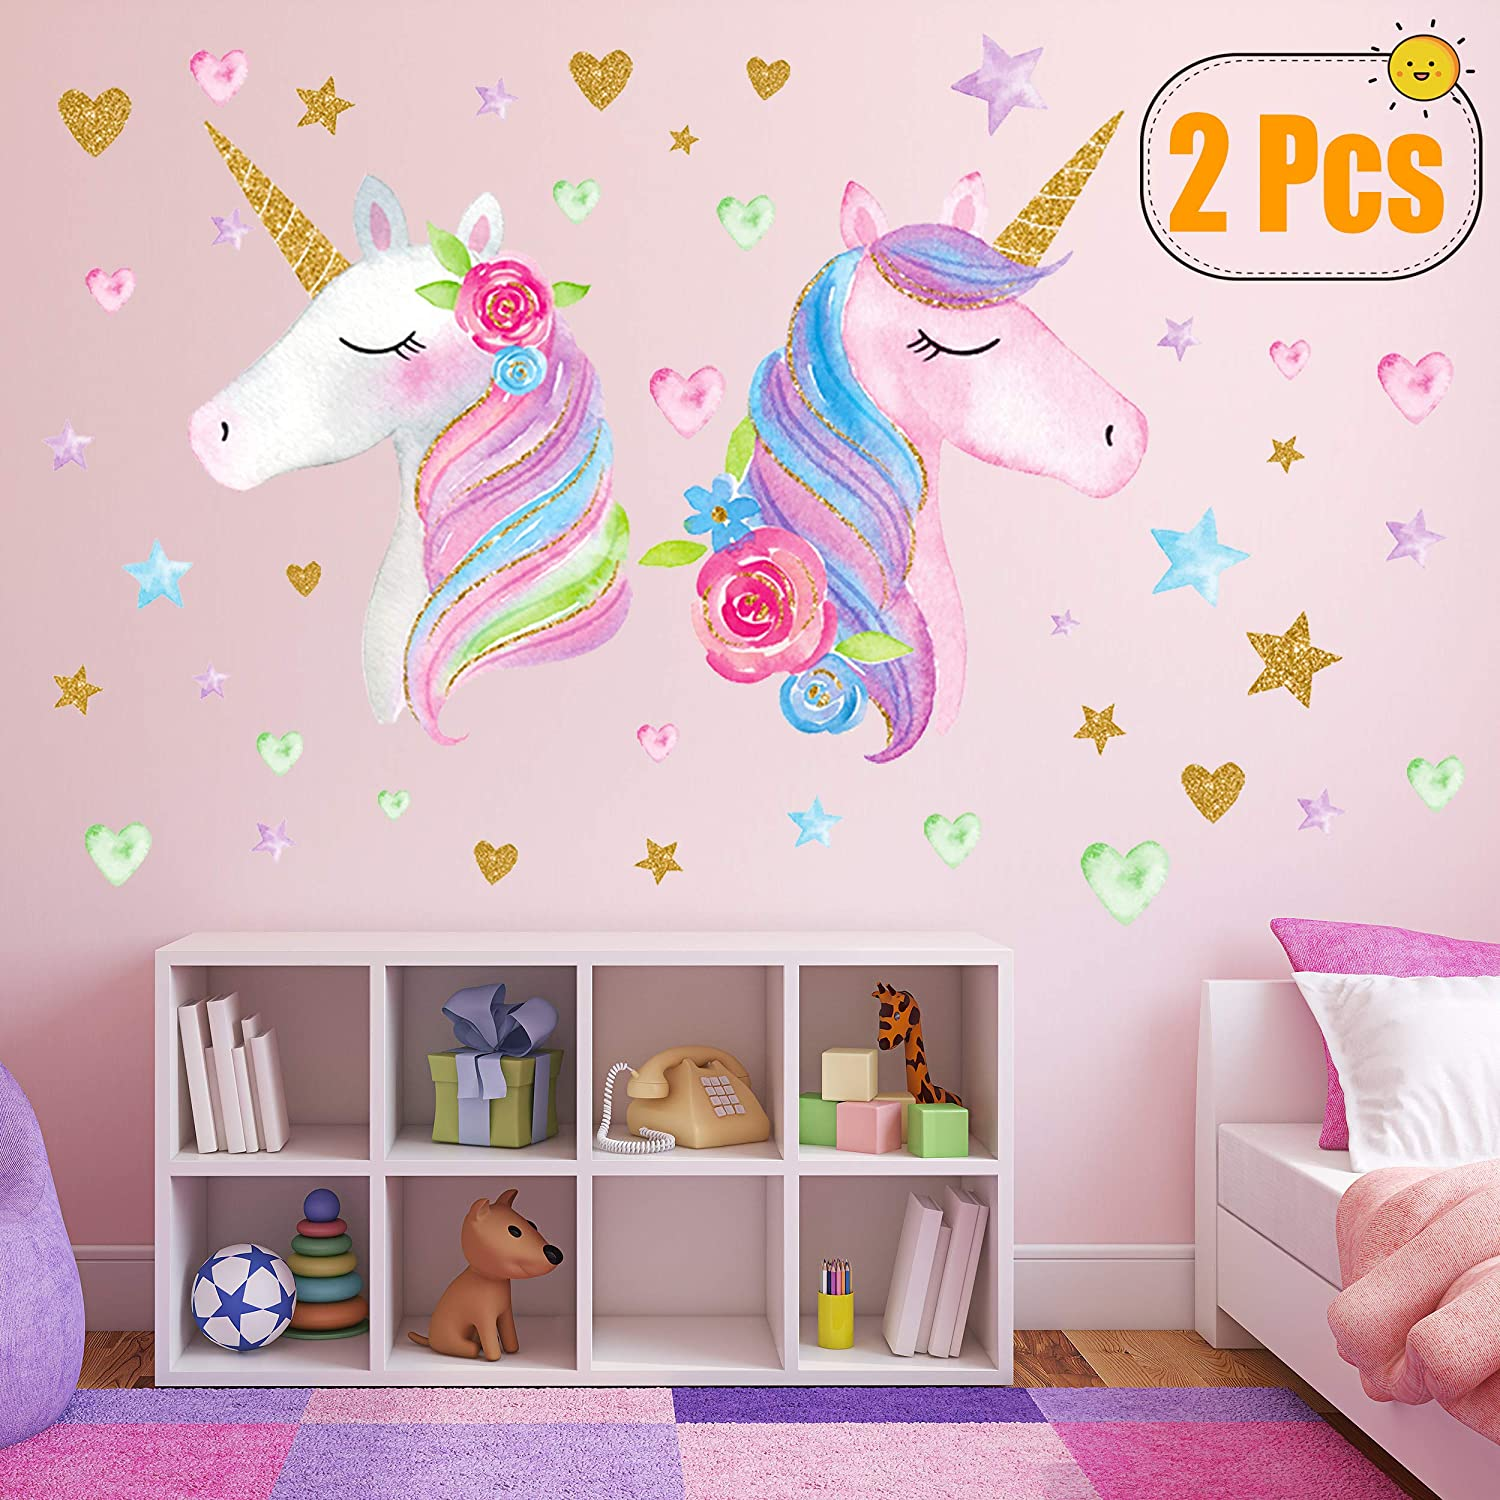 Amazon.com: 2 Sheets Large Size Unicorn Wall Decor,Removable ...